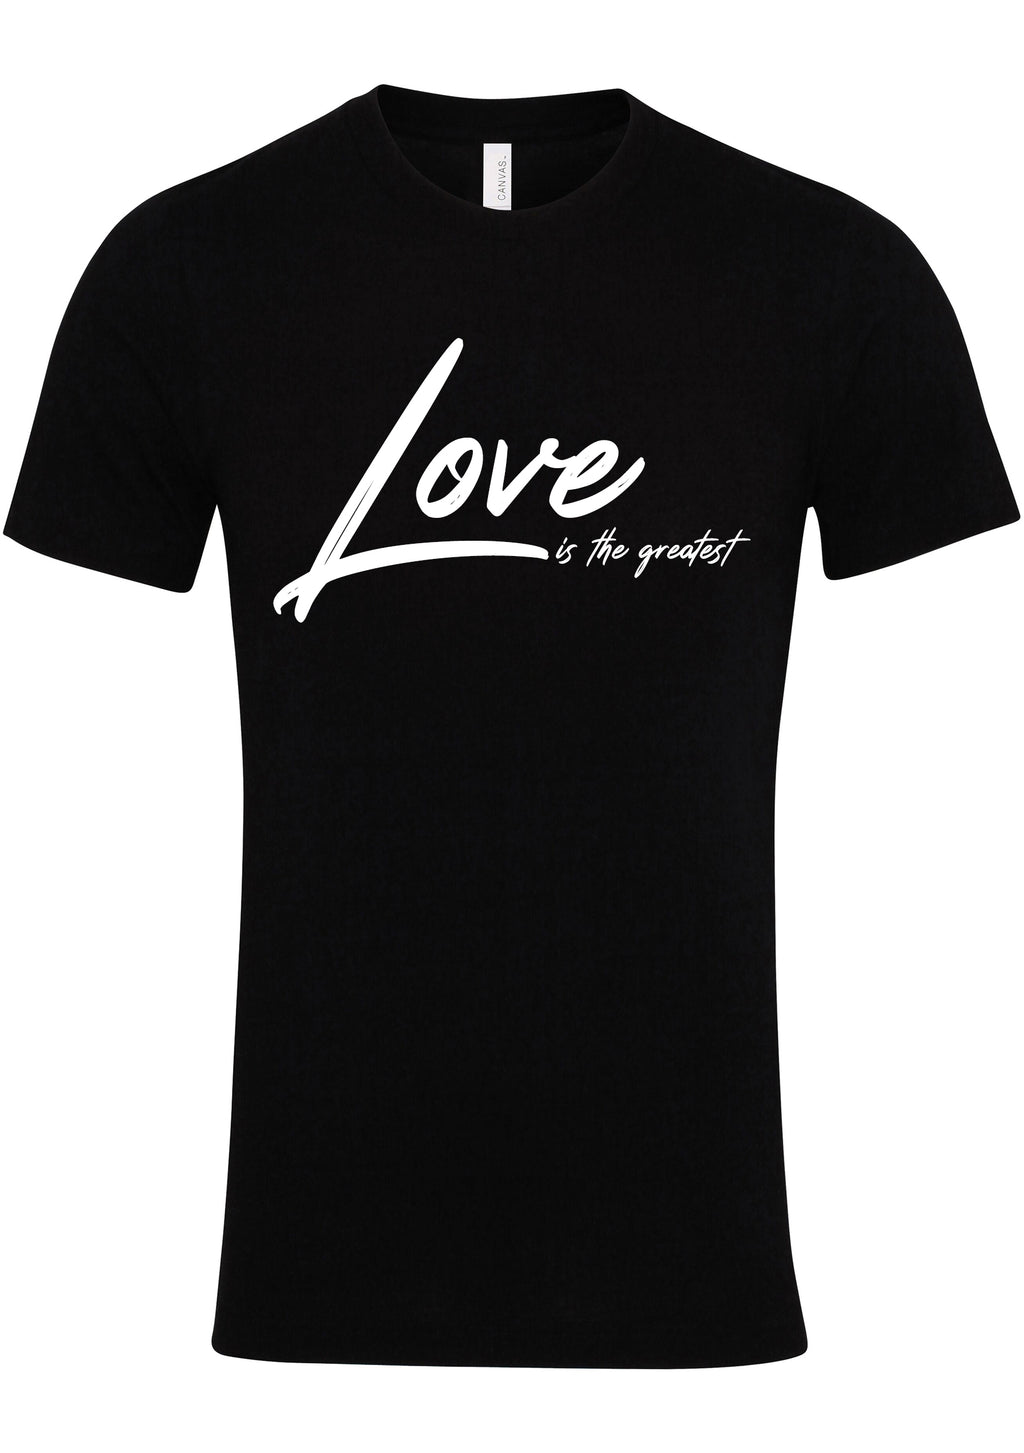 LOVE TG Unisex Jersey crew neck t-shirt (Black)